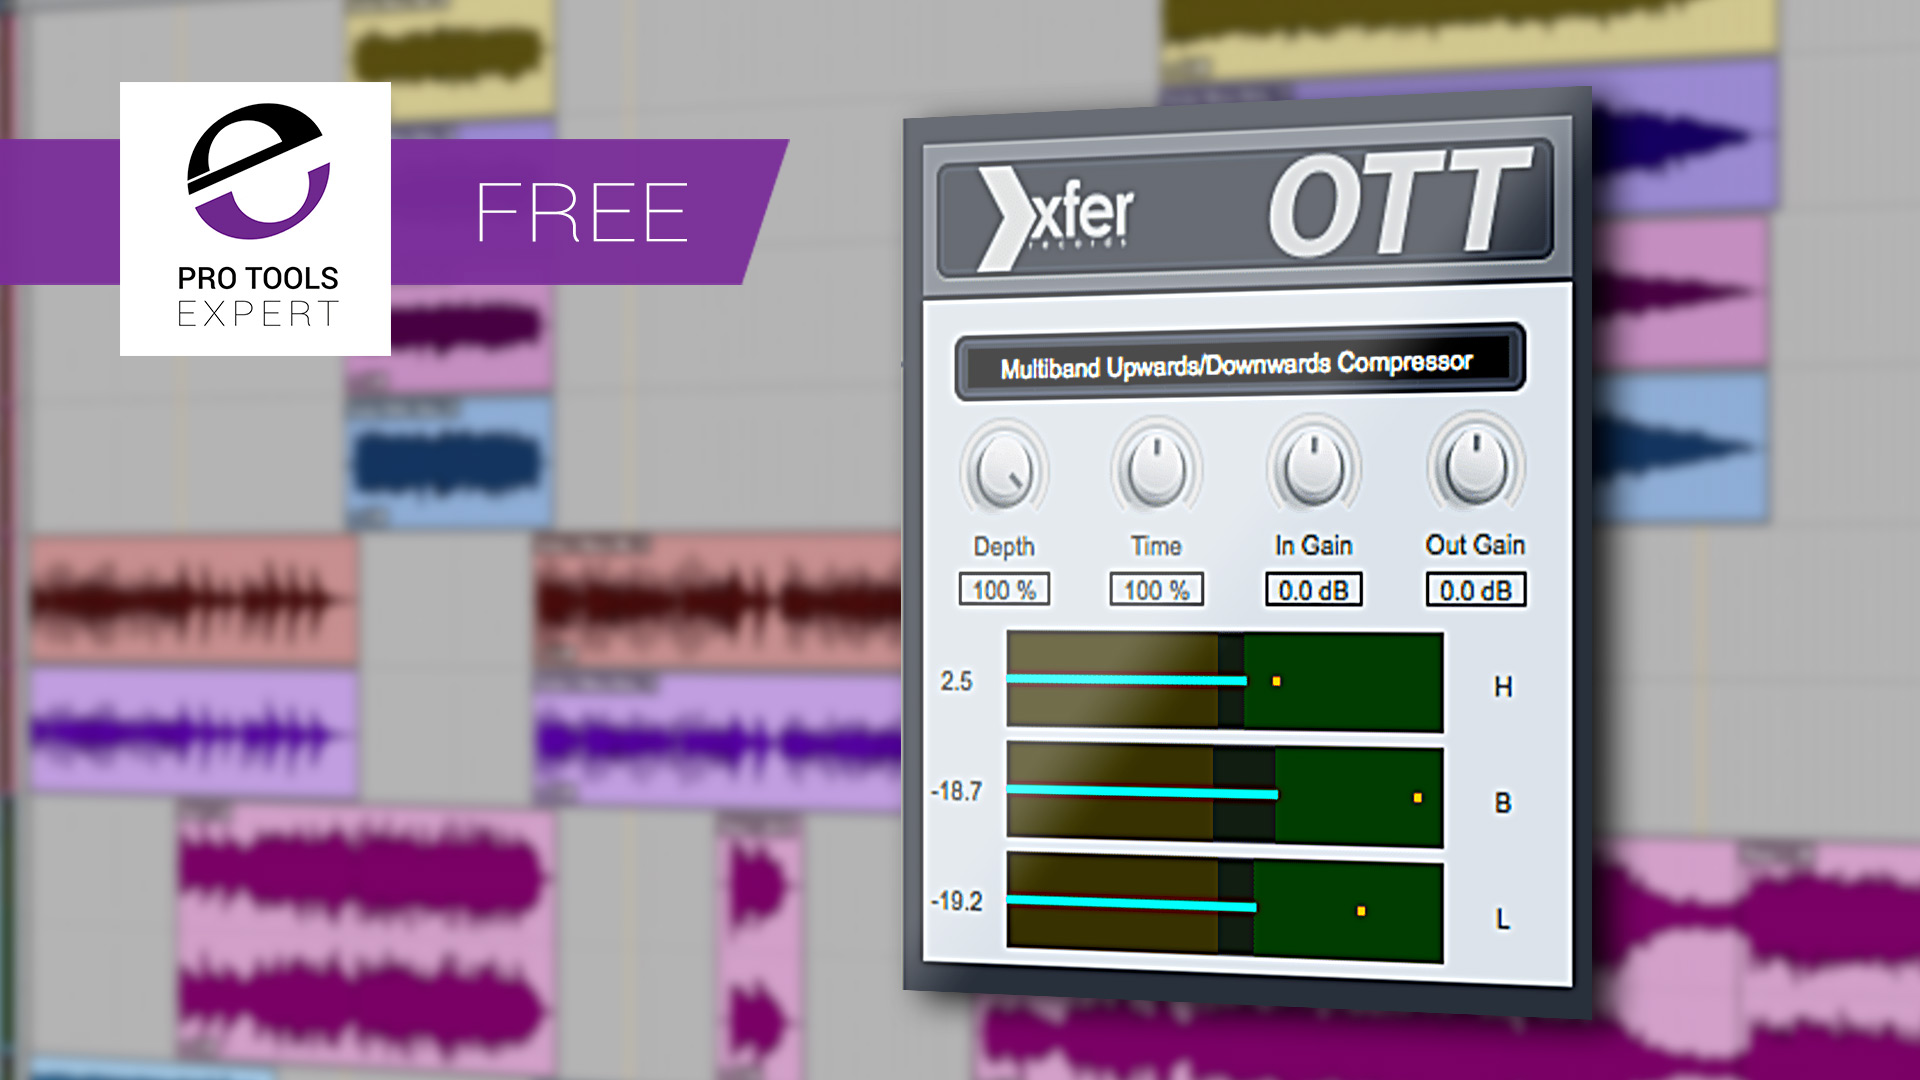 free-plug-in-ott-xfer-records-compressor.jpg